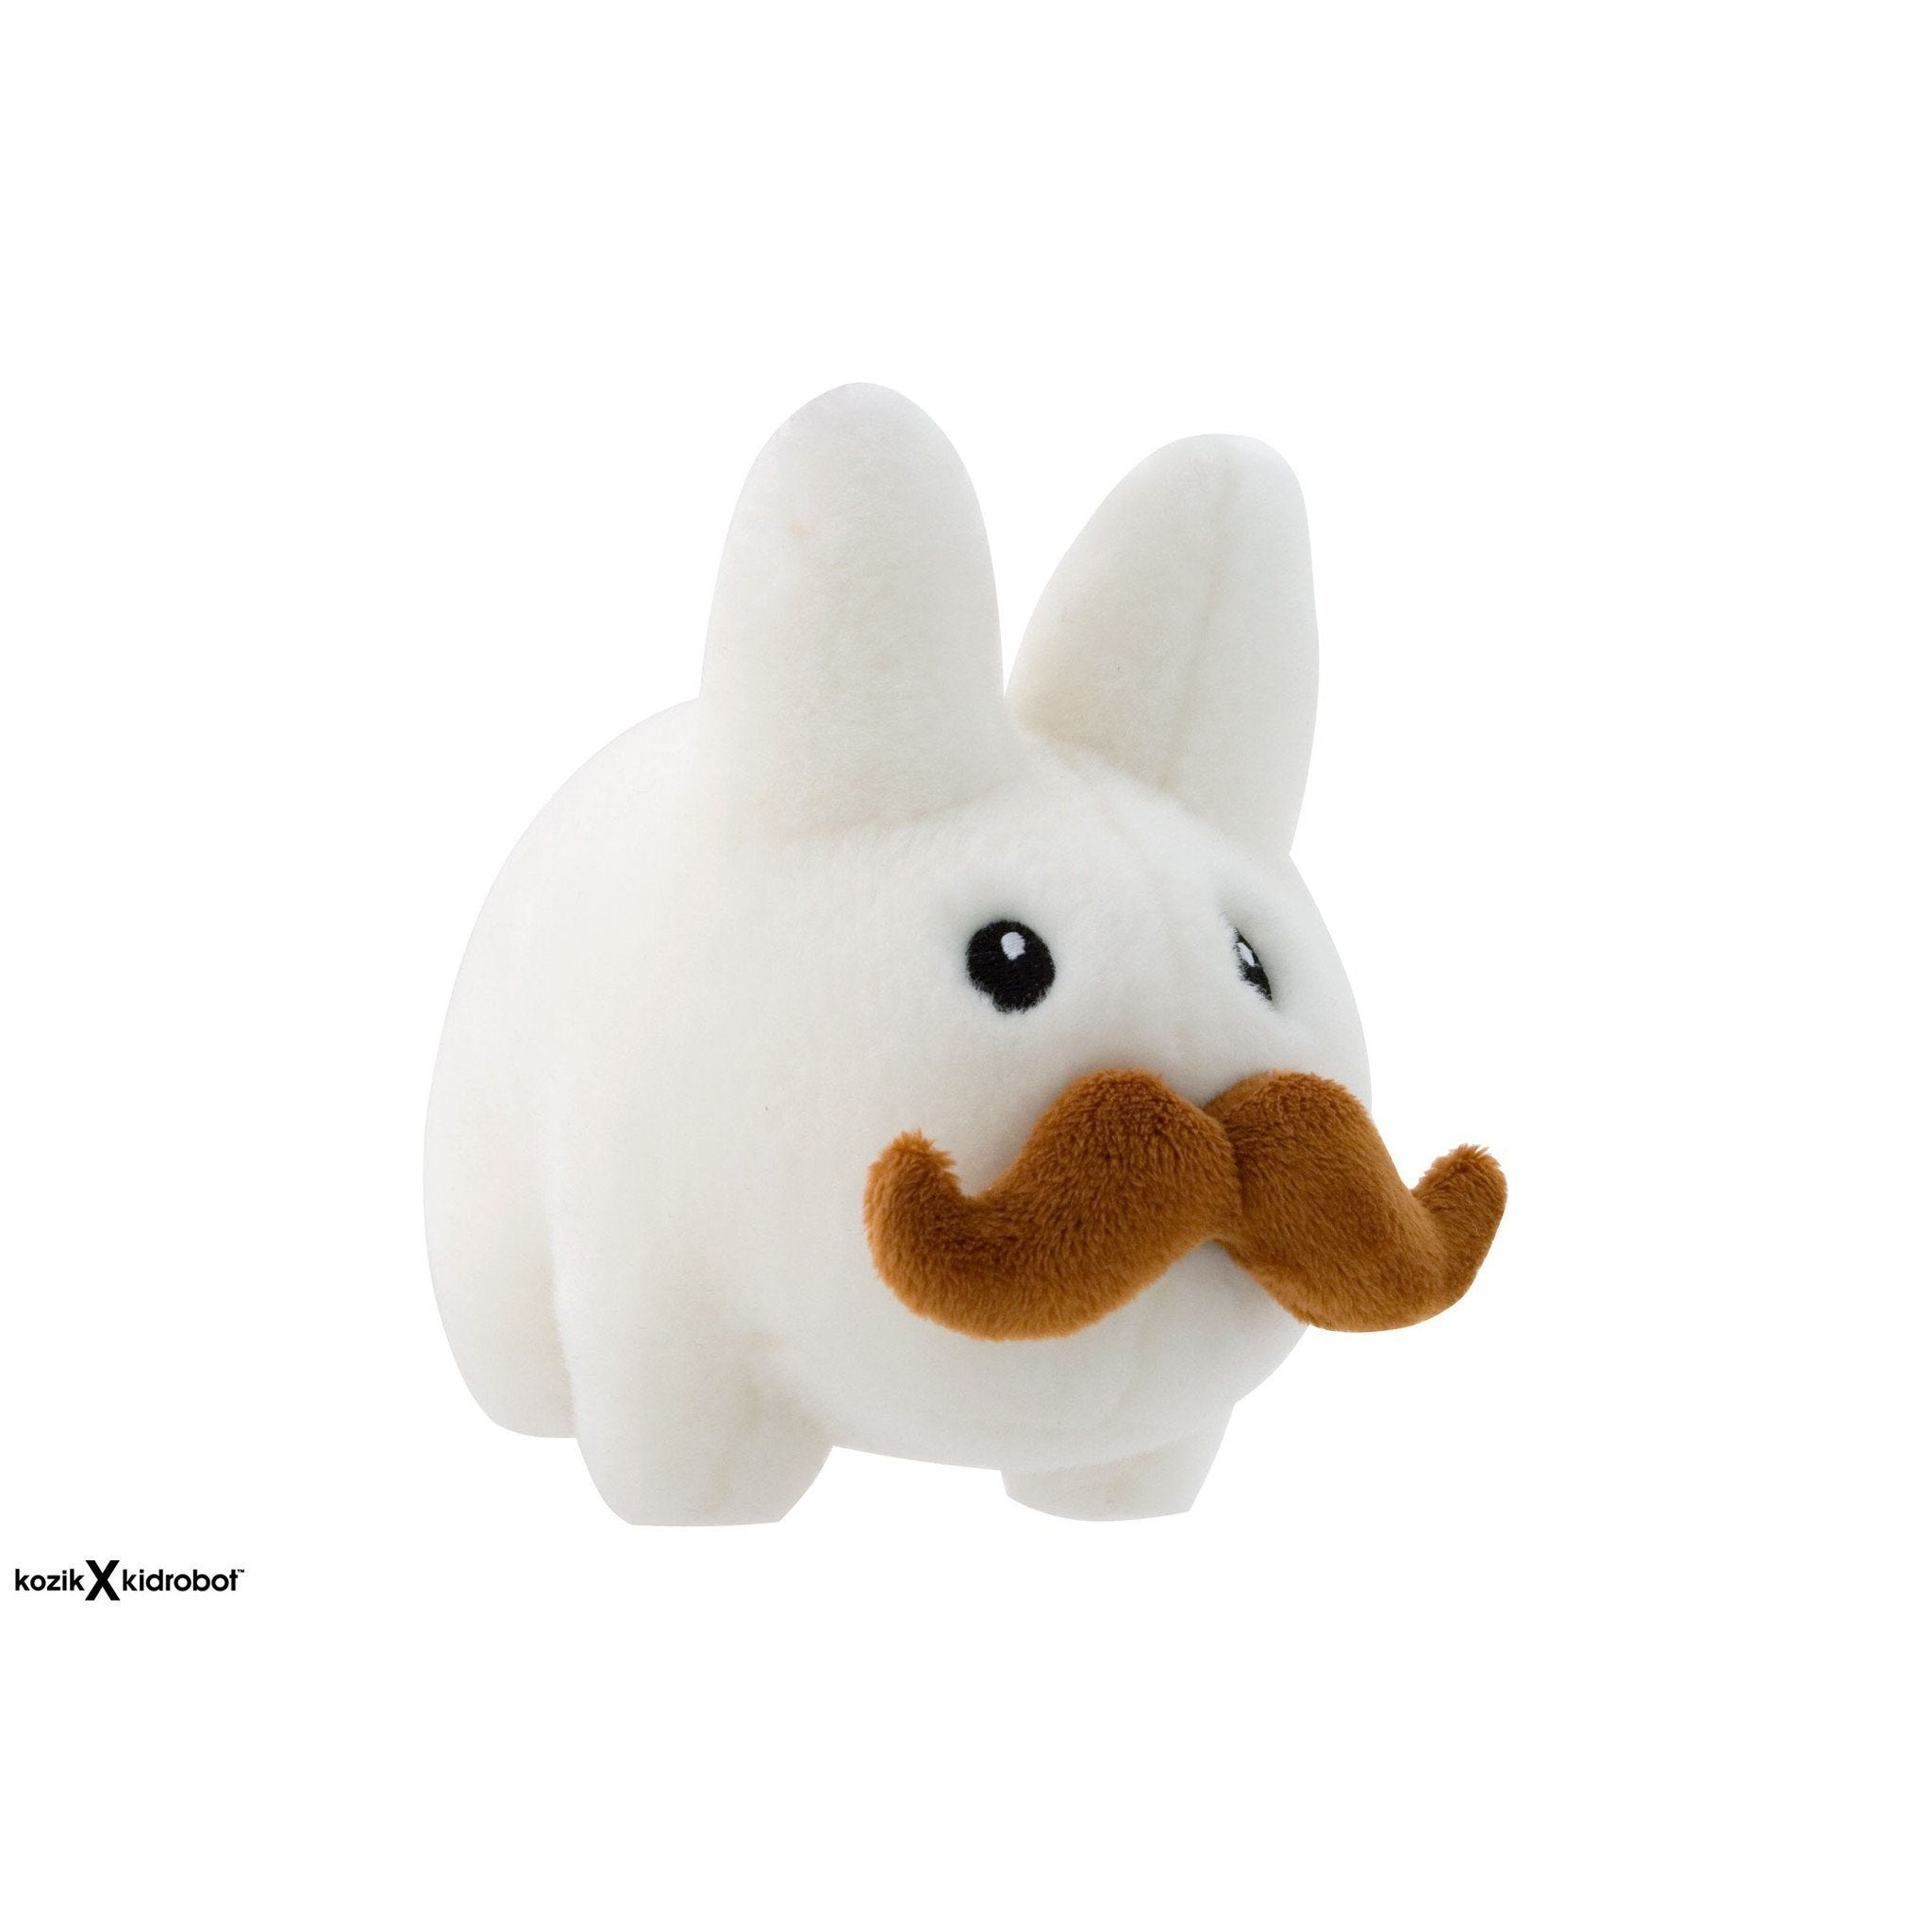 "Stache Labbit Small 7"" White Stuffed Animal Plush - Kidrobot"